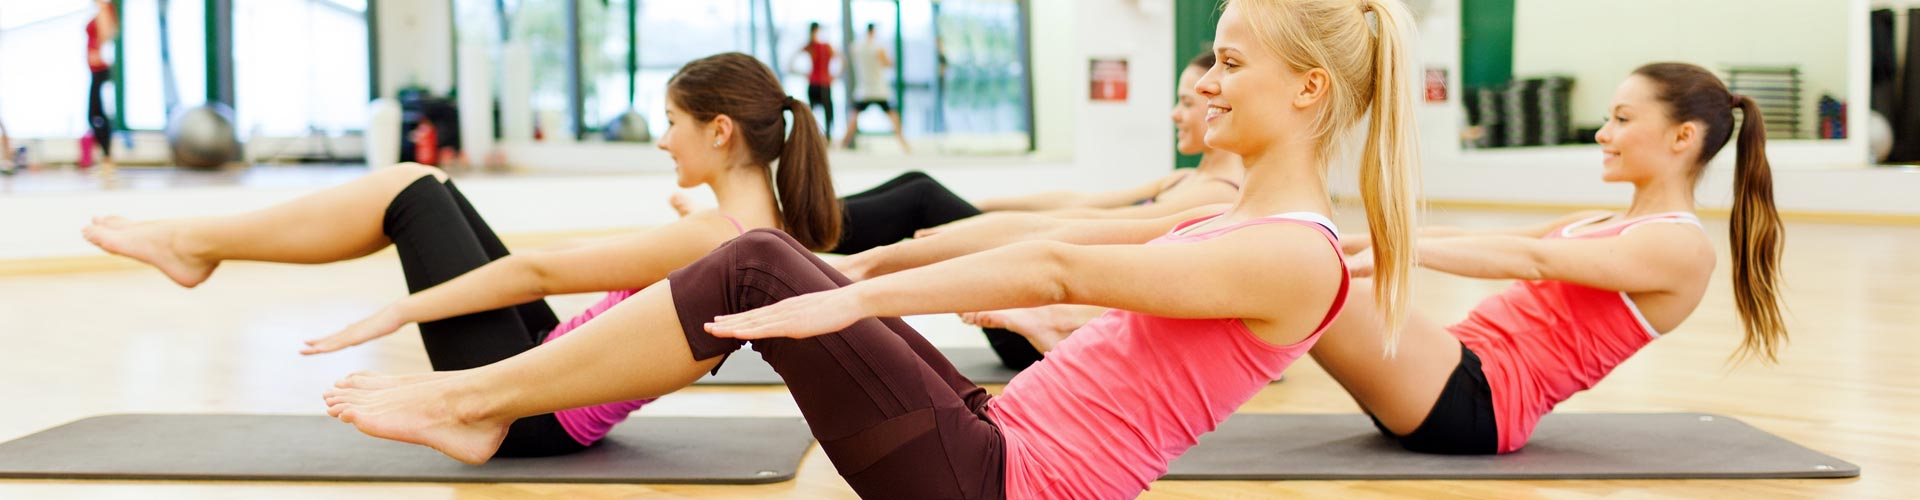 Upcoming Courses - Diploma In Teaching Pilates – Fit2Train ...